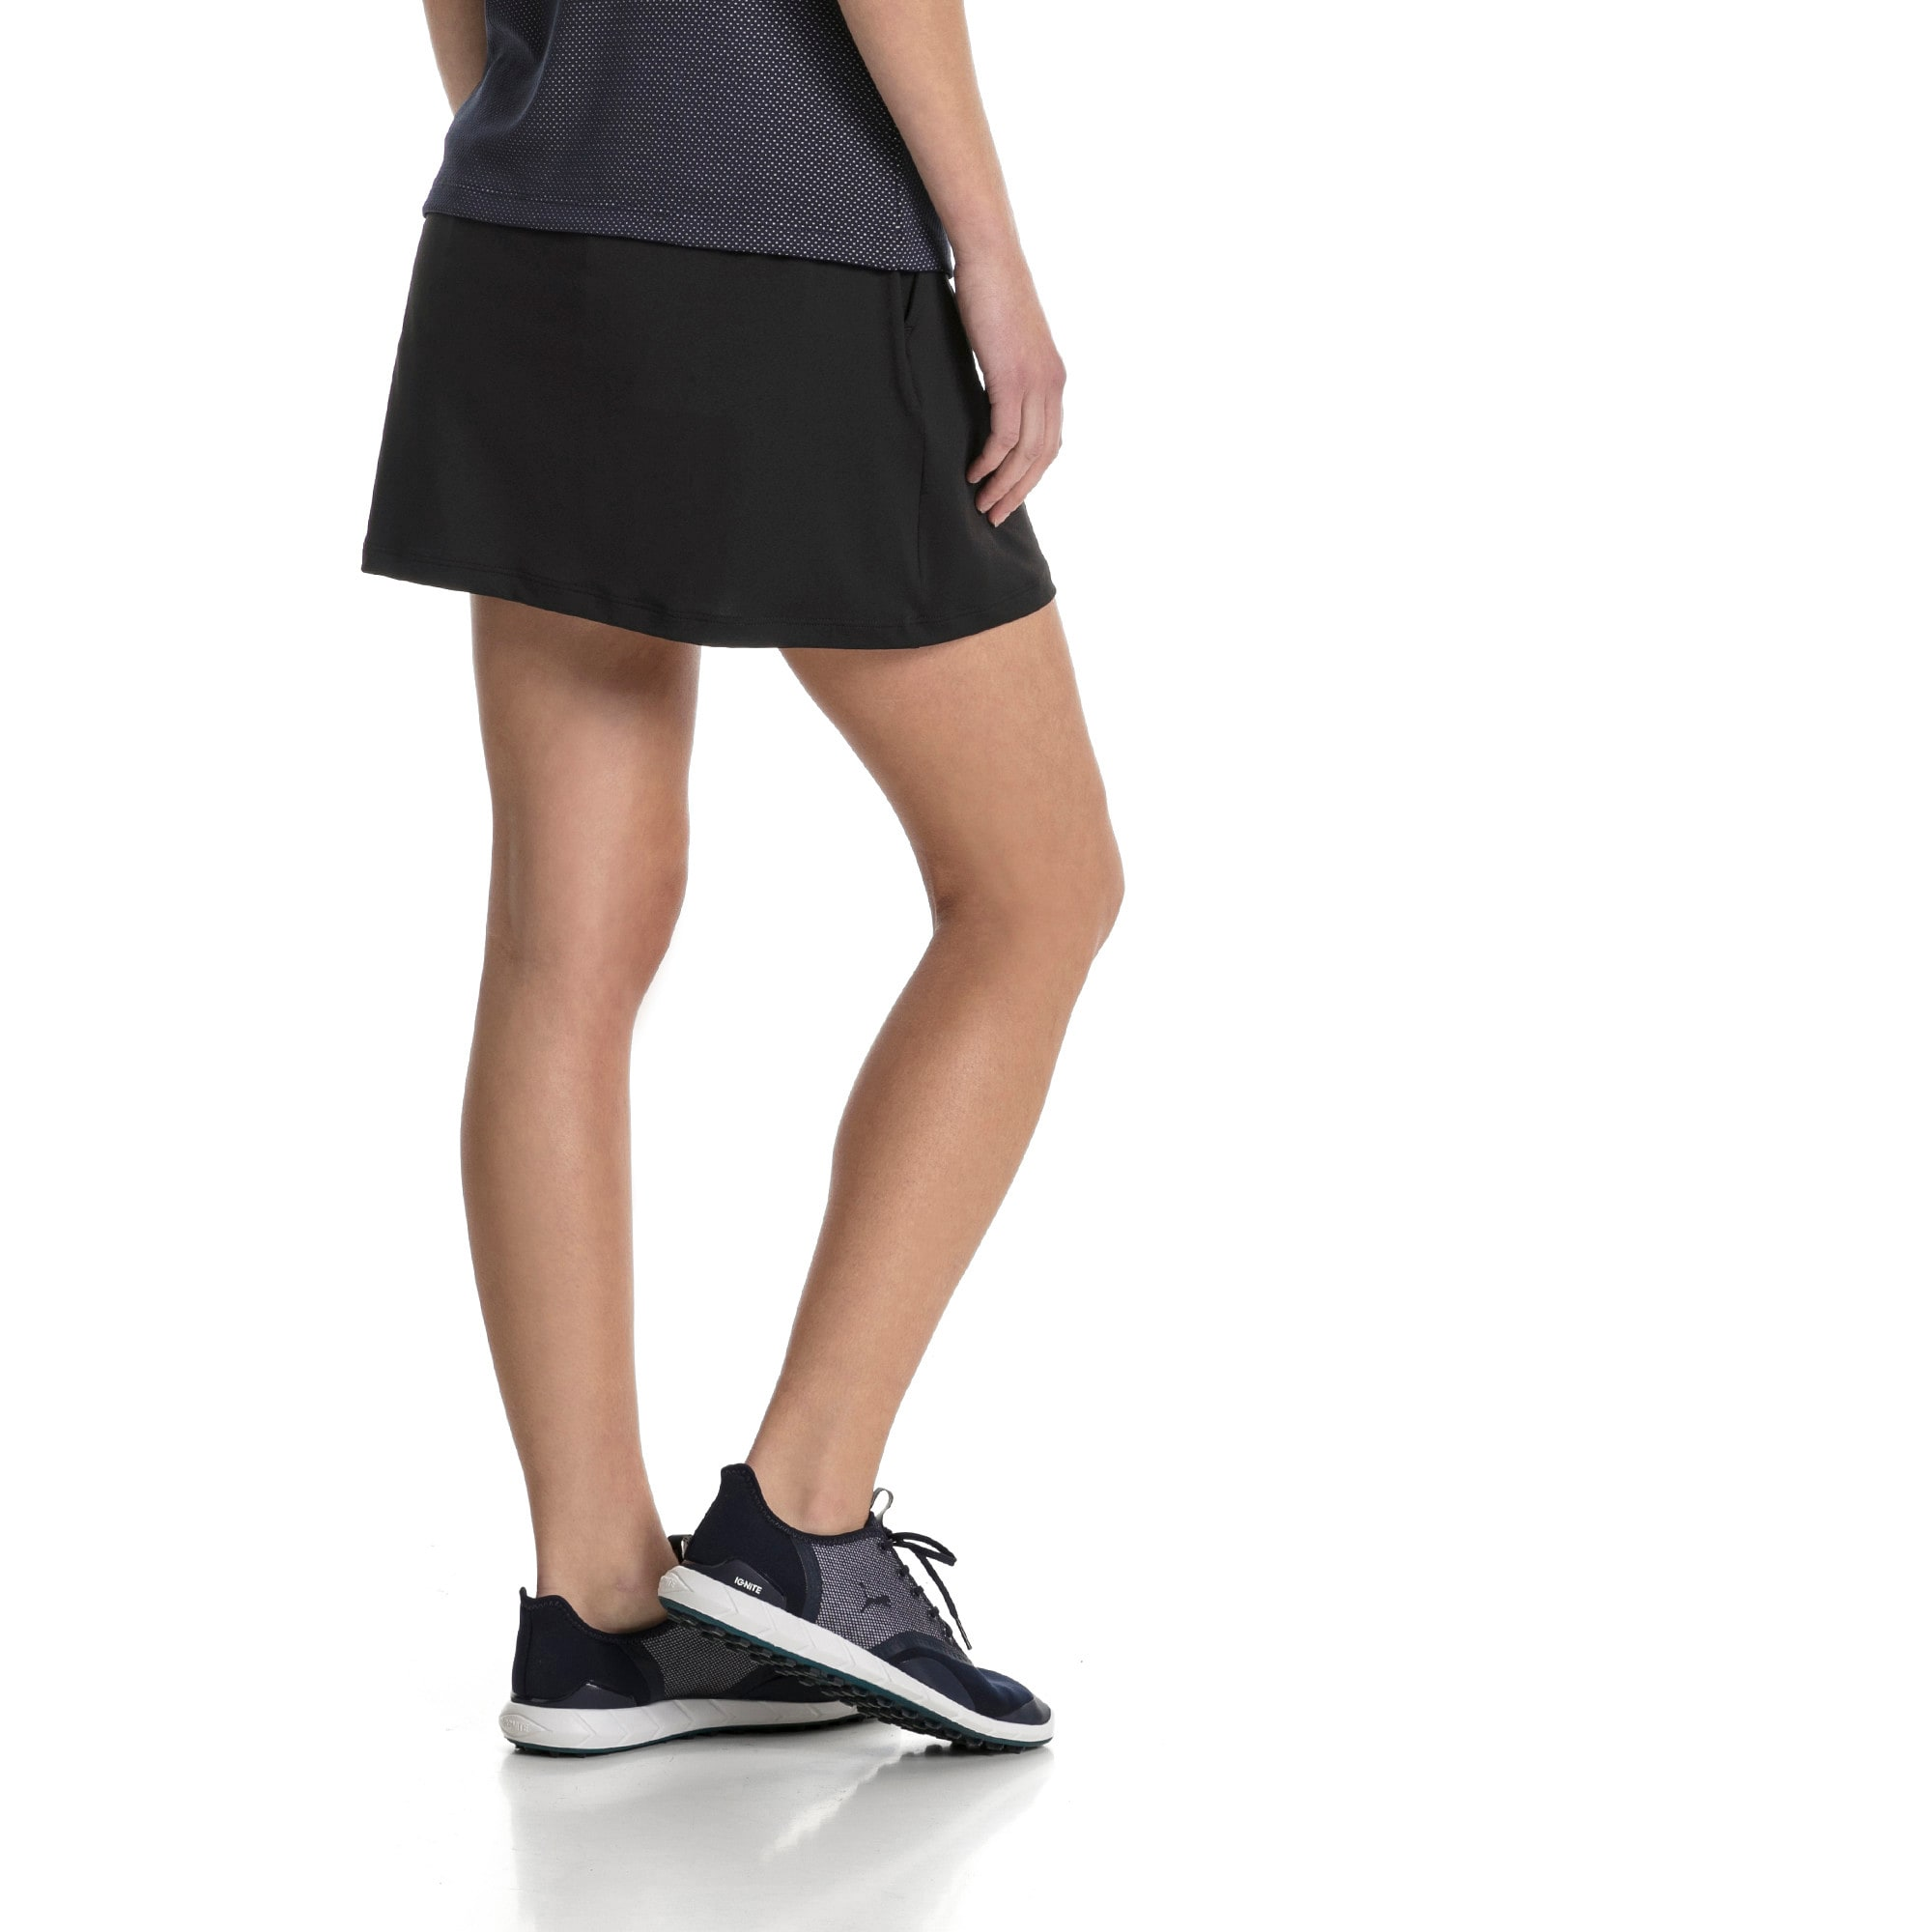 Thumbnail 2 of Golf Women's PWRSHAPE Solid Knit Skirt, Puma Black, medium